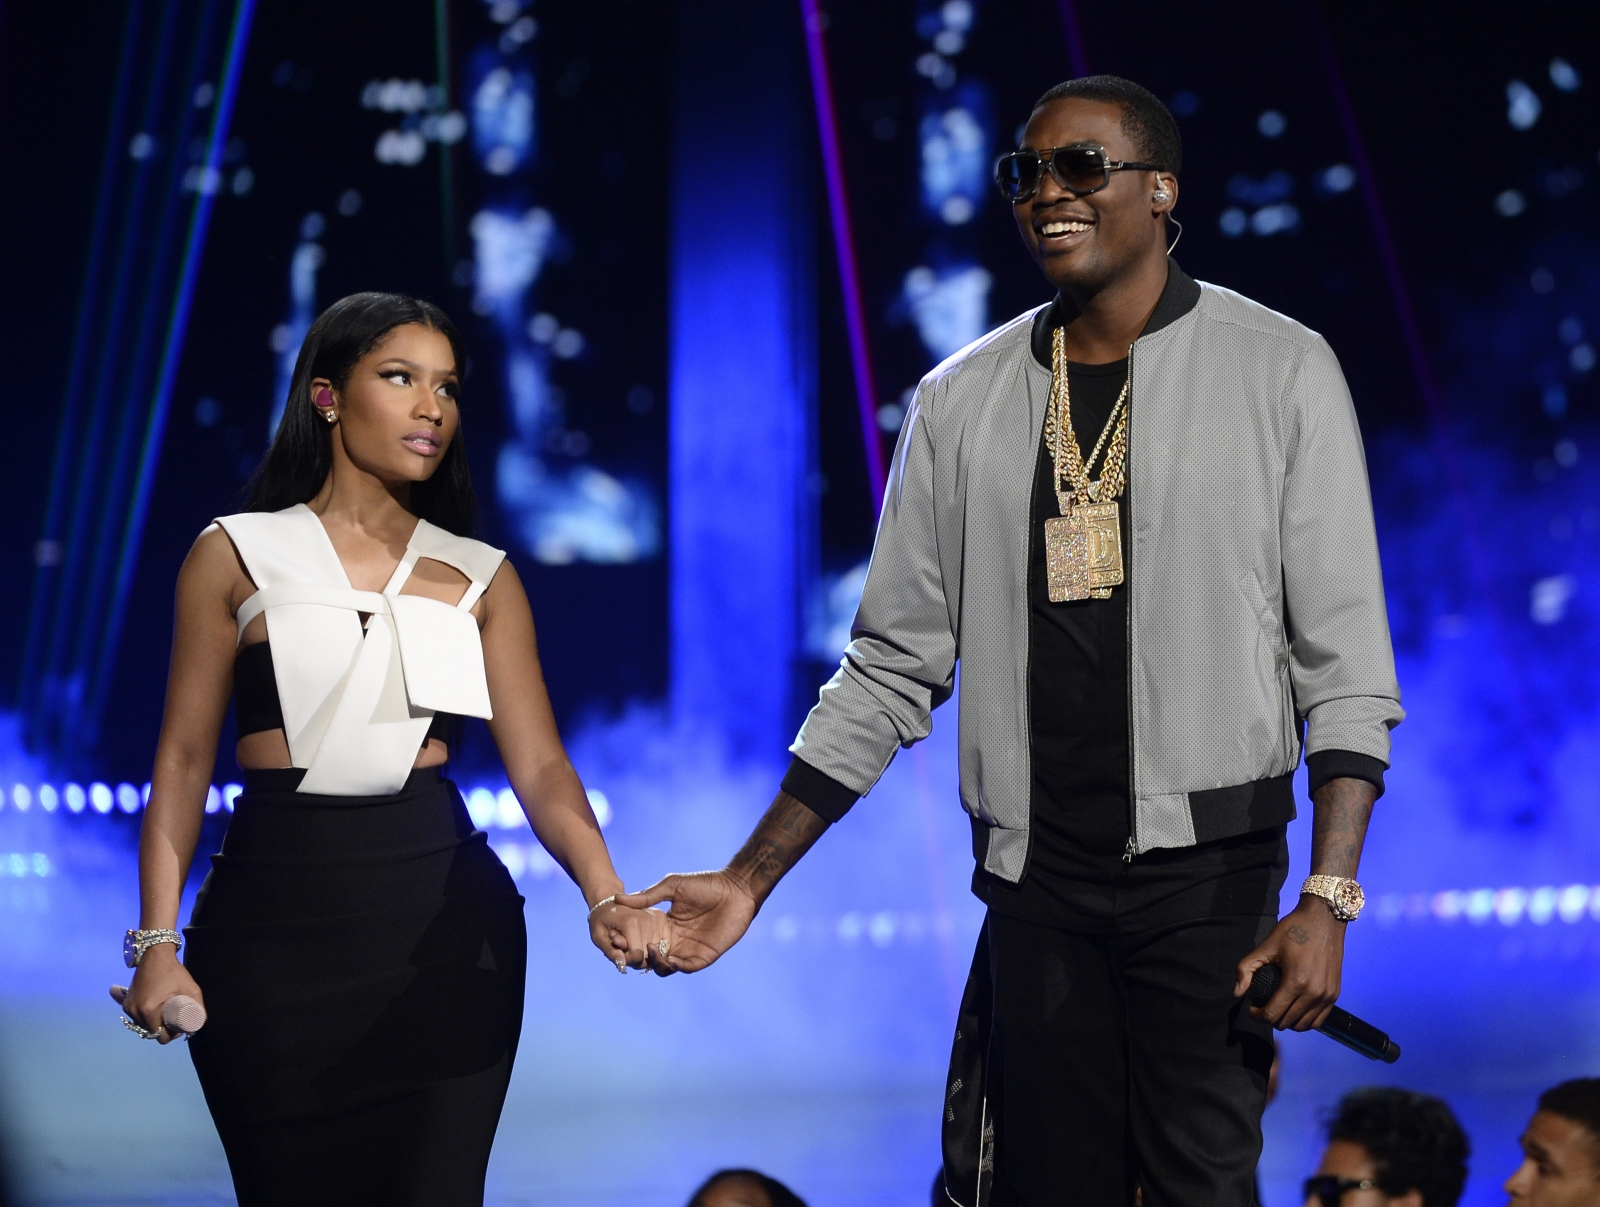 Nicki Minaj Buying A House With Meek Mill Young Money